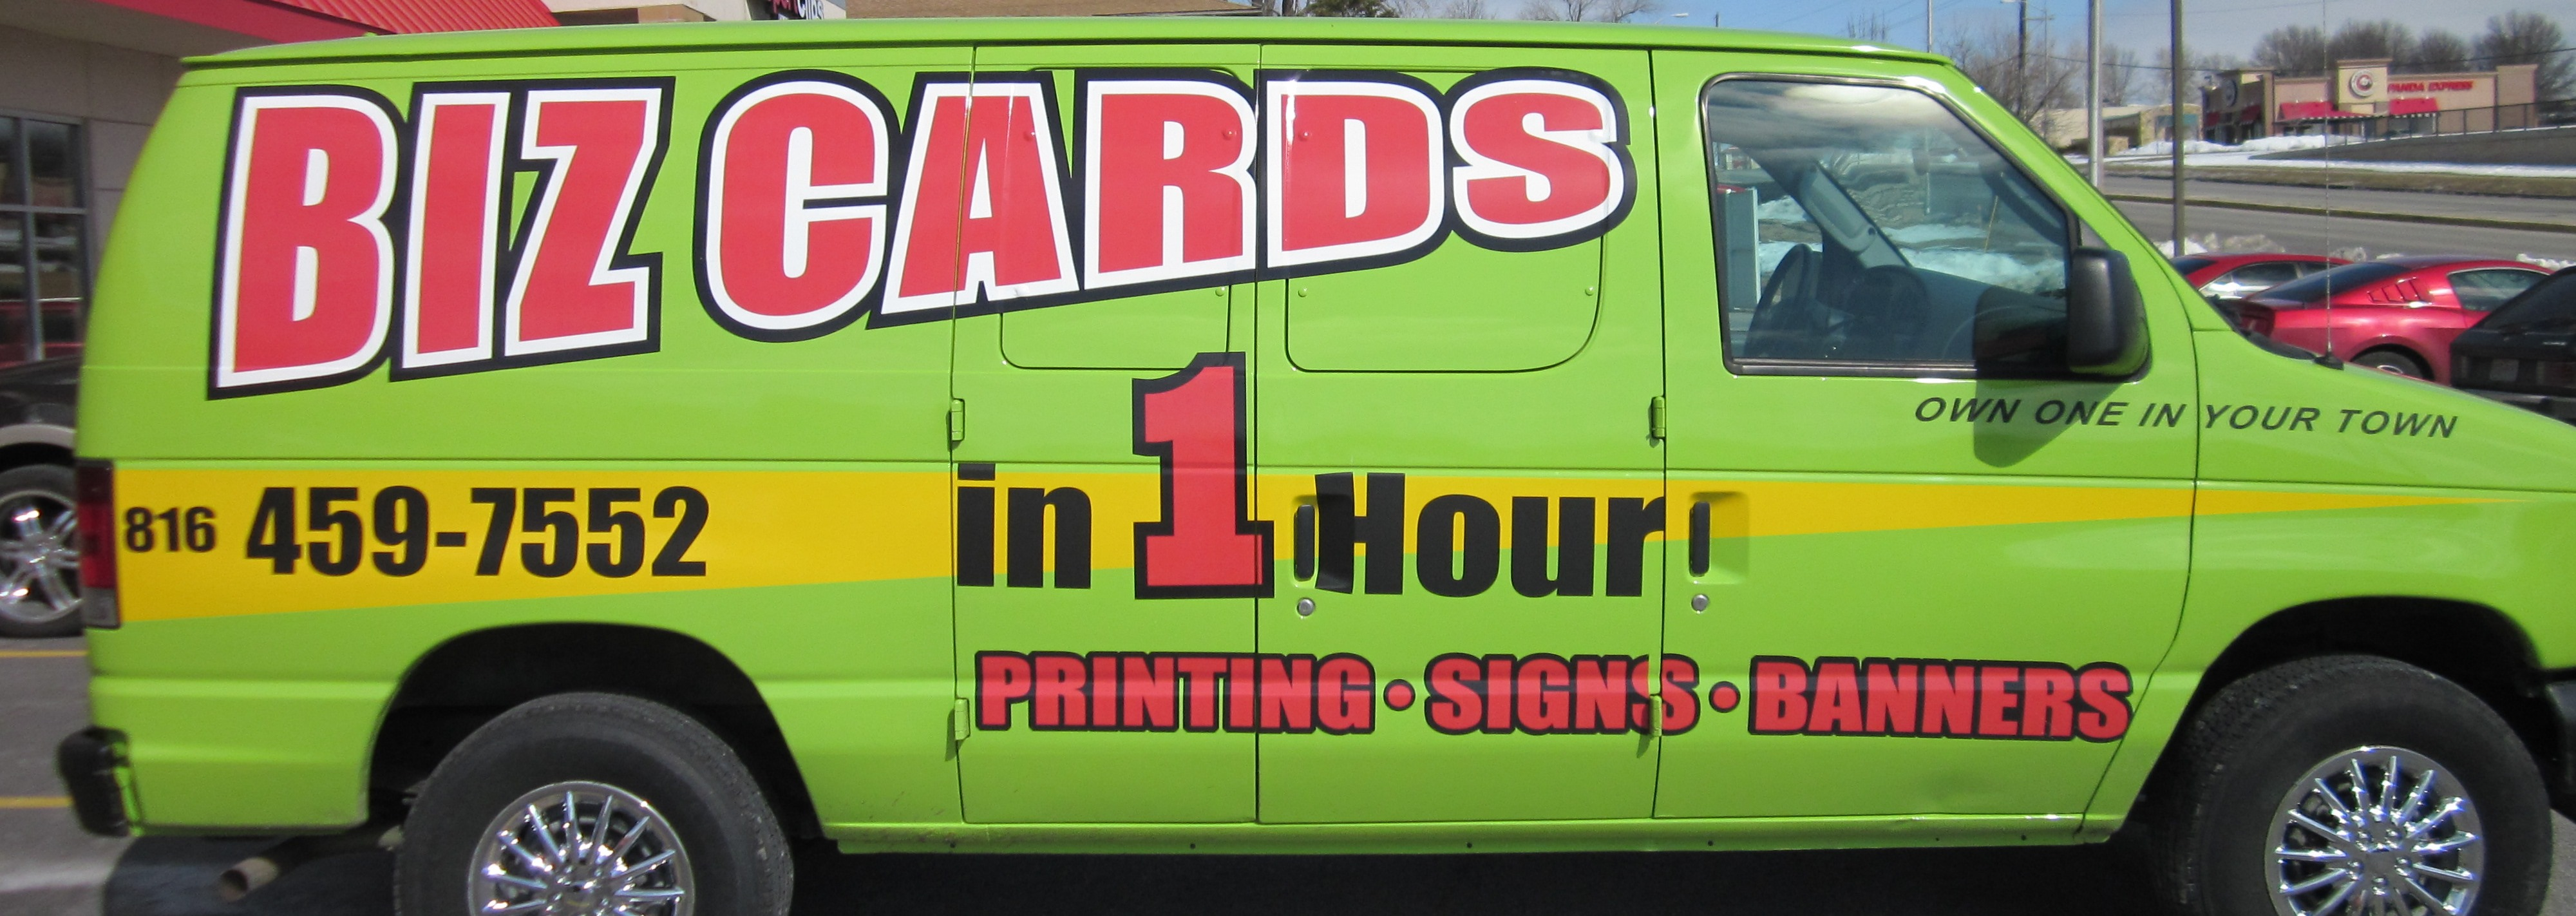 Auto Lettering | Business Cards Kansas City